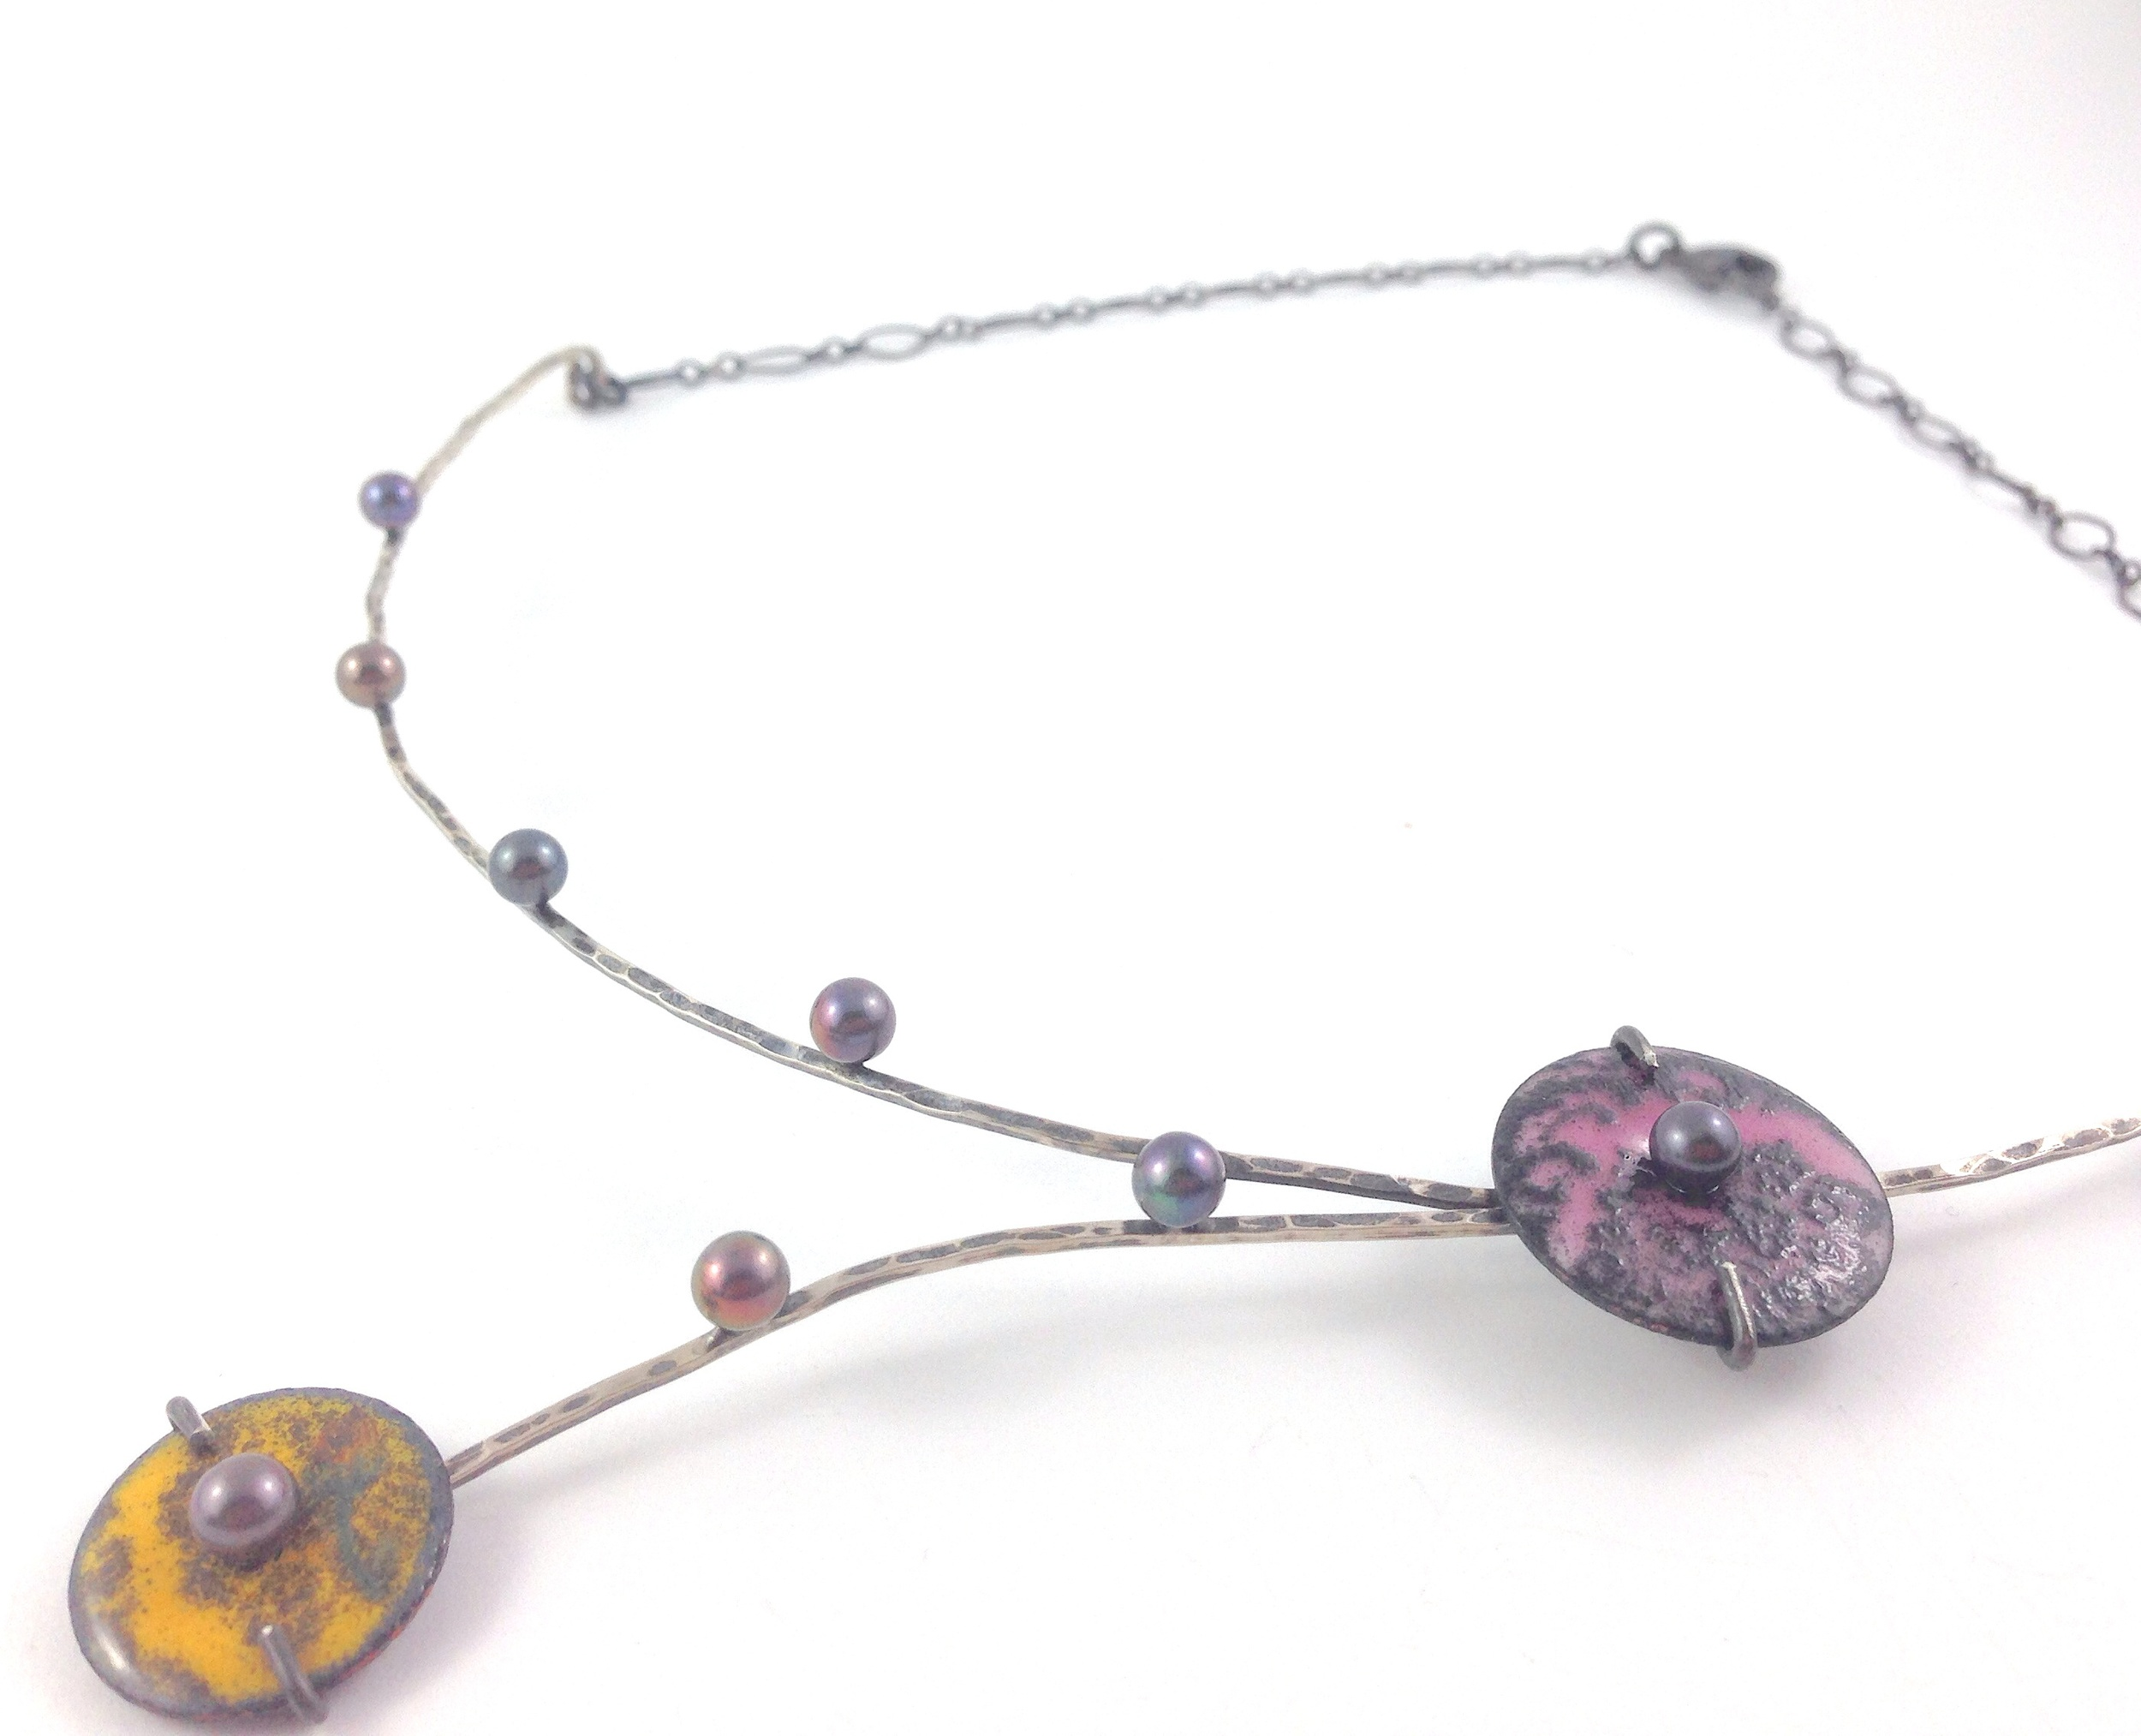 Cherry Blossom Necklace © Patsy Kay Kolesar Design